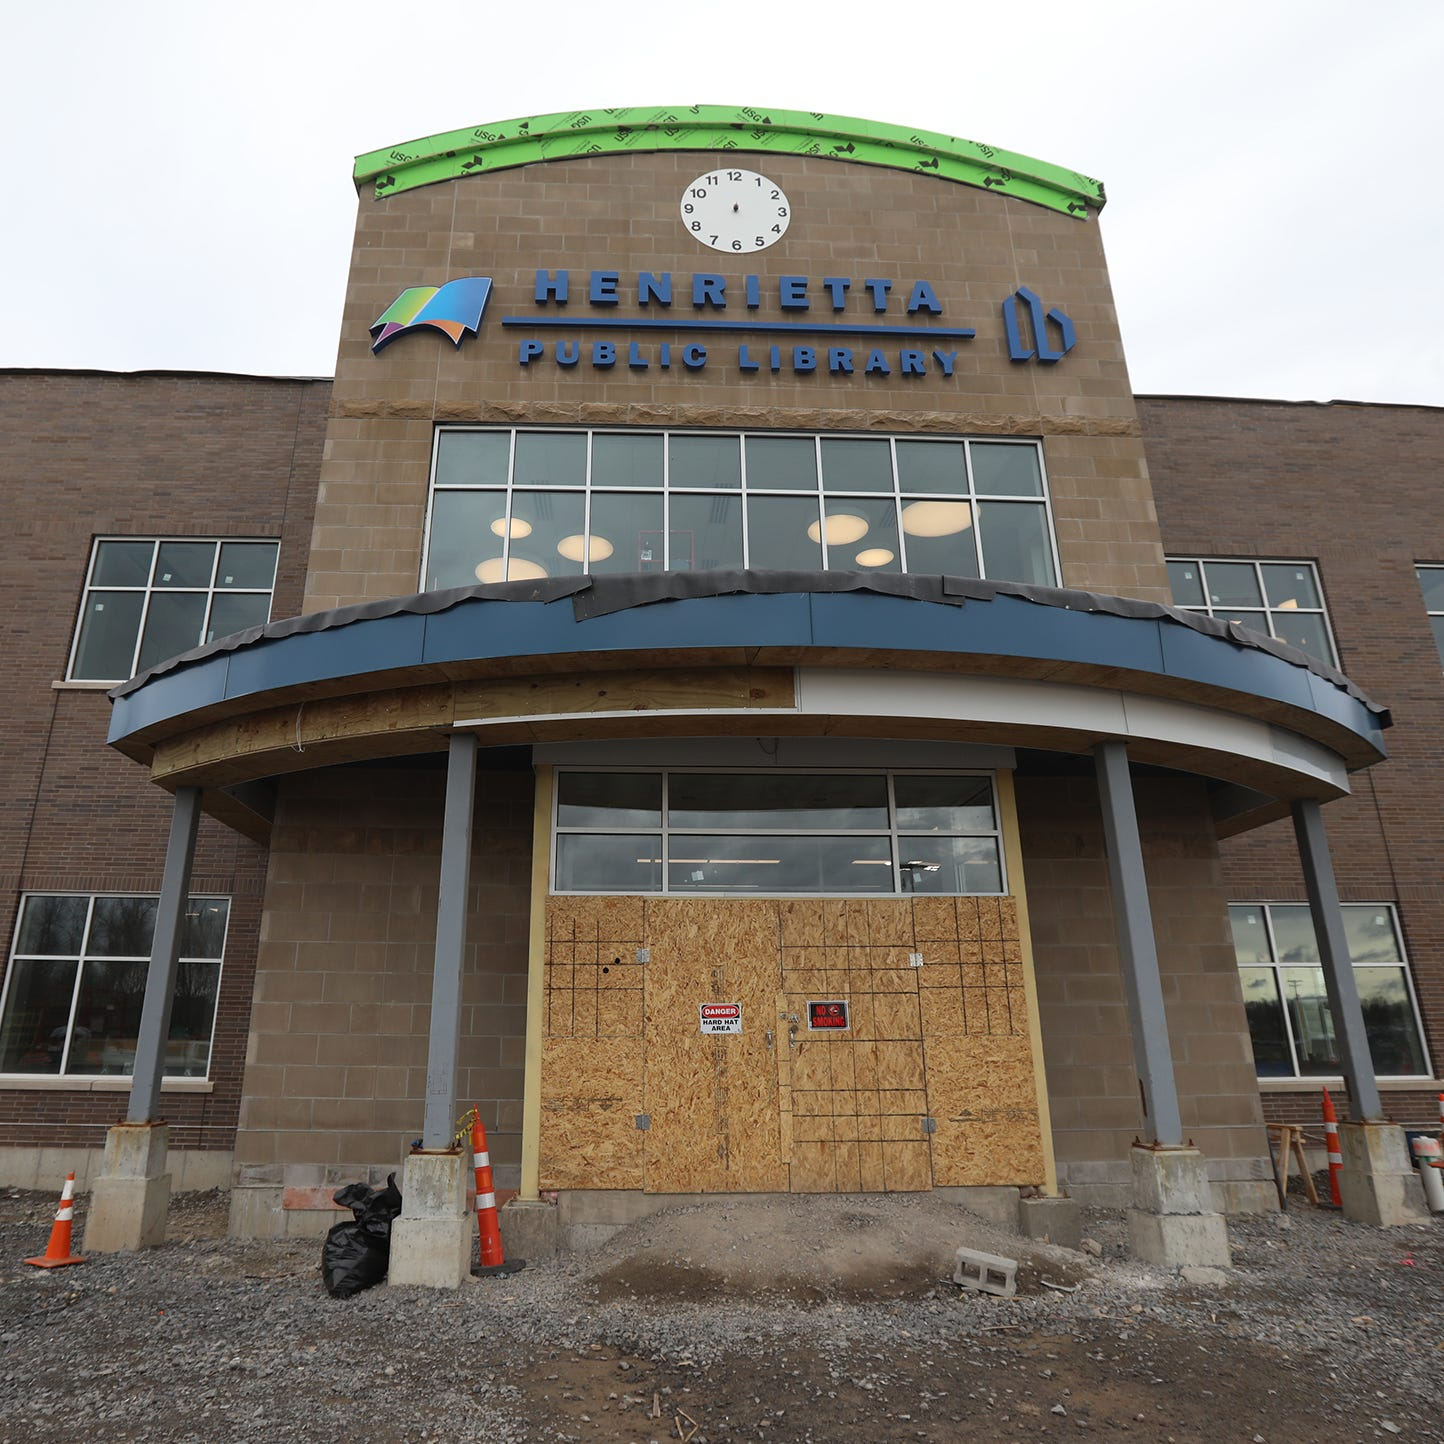 How did Henrietta's new library end up costing an extra $900,000?